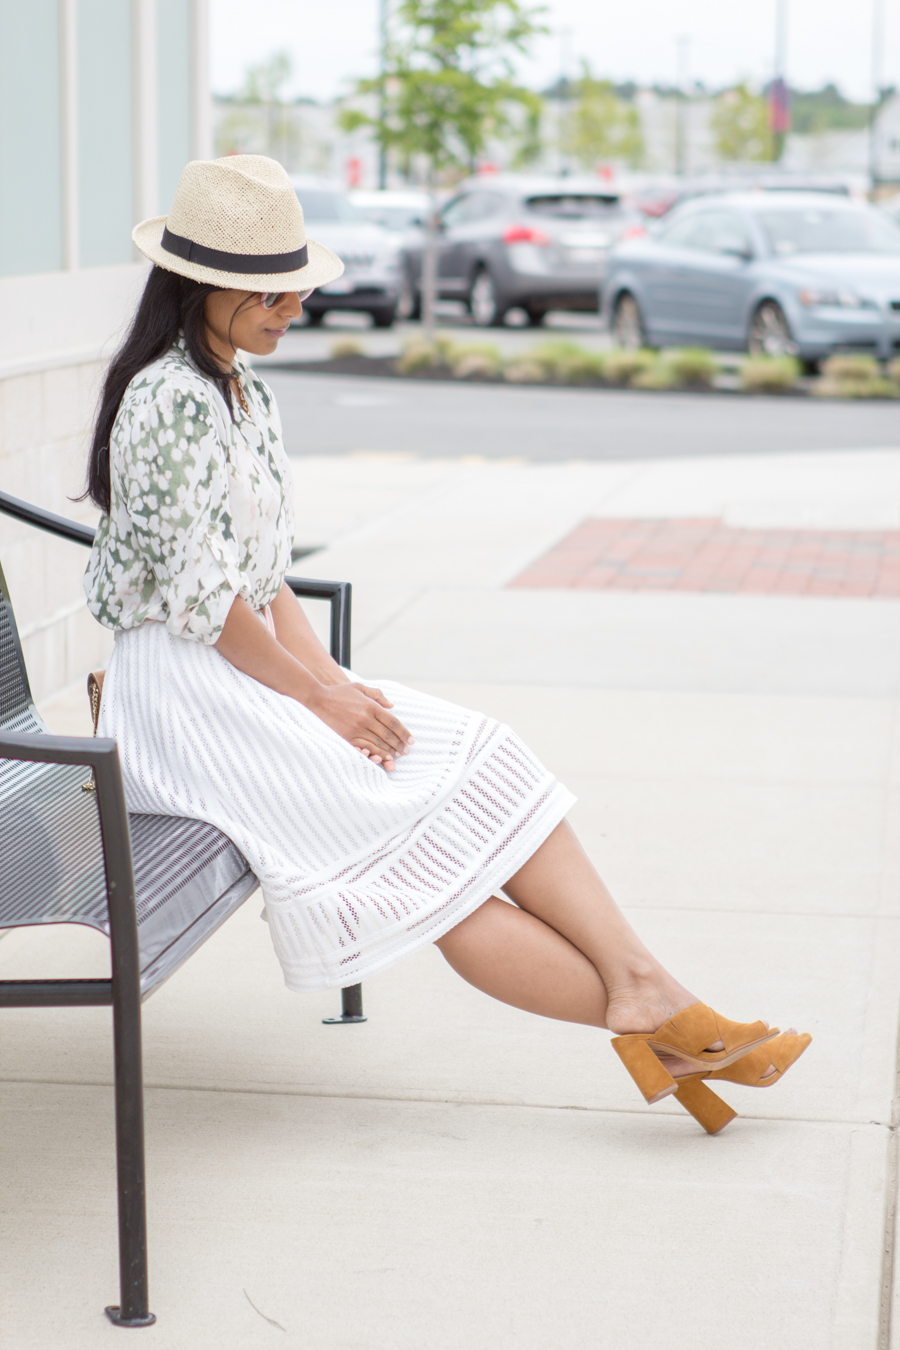 white skirt, midi skirt, look book, summer, garden print, patent leather blush, pink belt, skinny belt, camel shoulder bag, mules, straw hat, how tos, outfit formula, style blog, target style, vince camuto, h&m